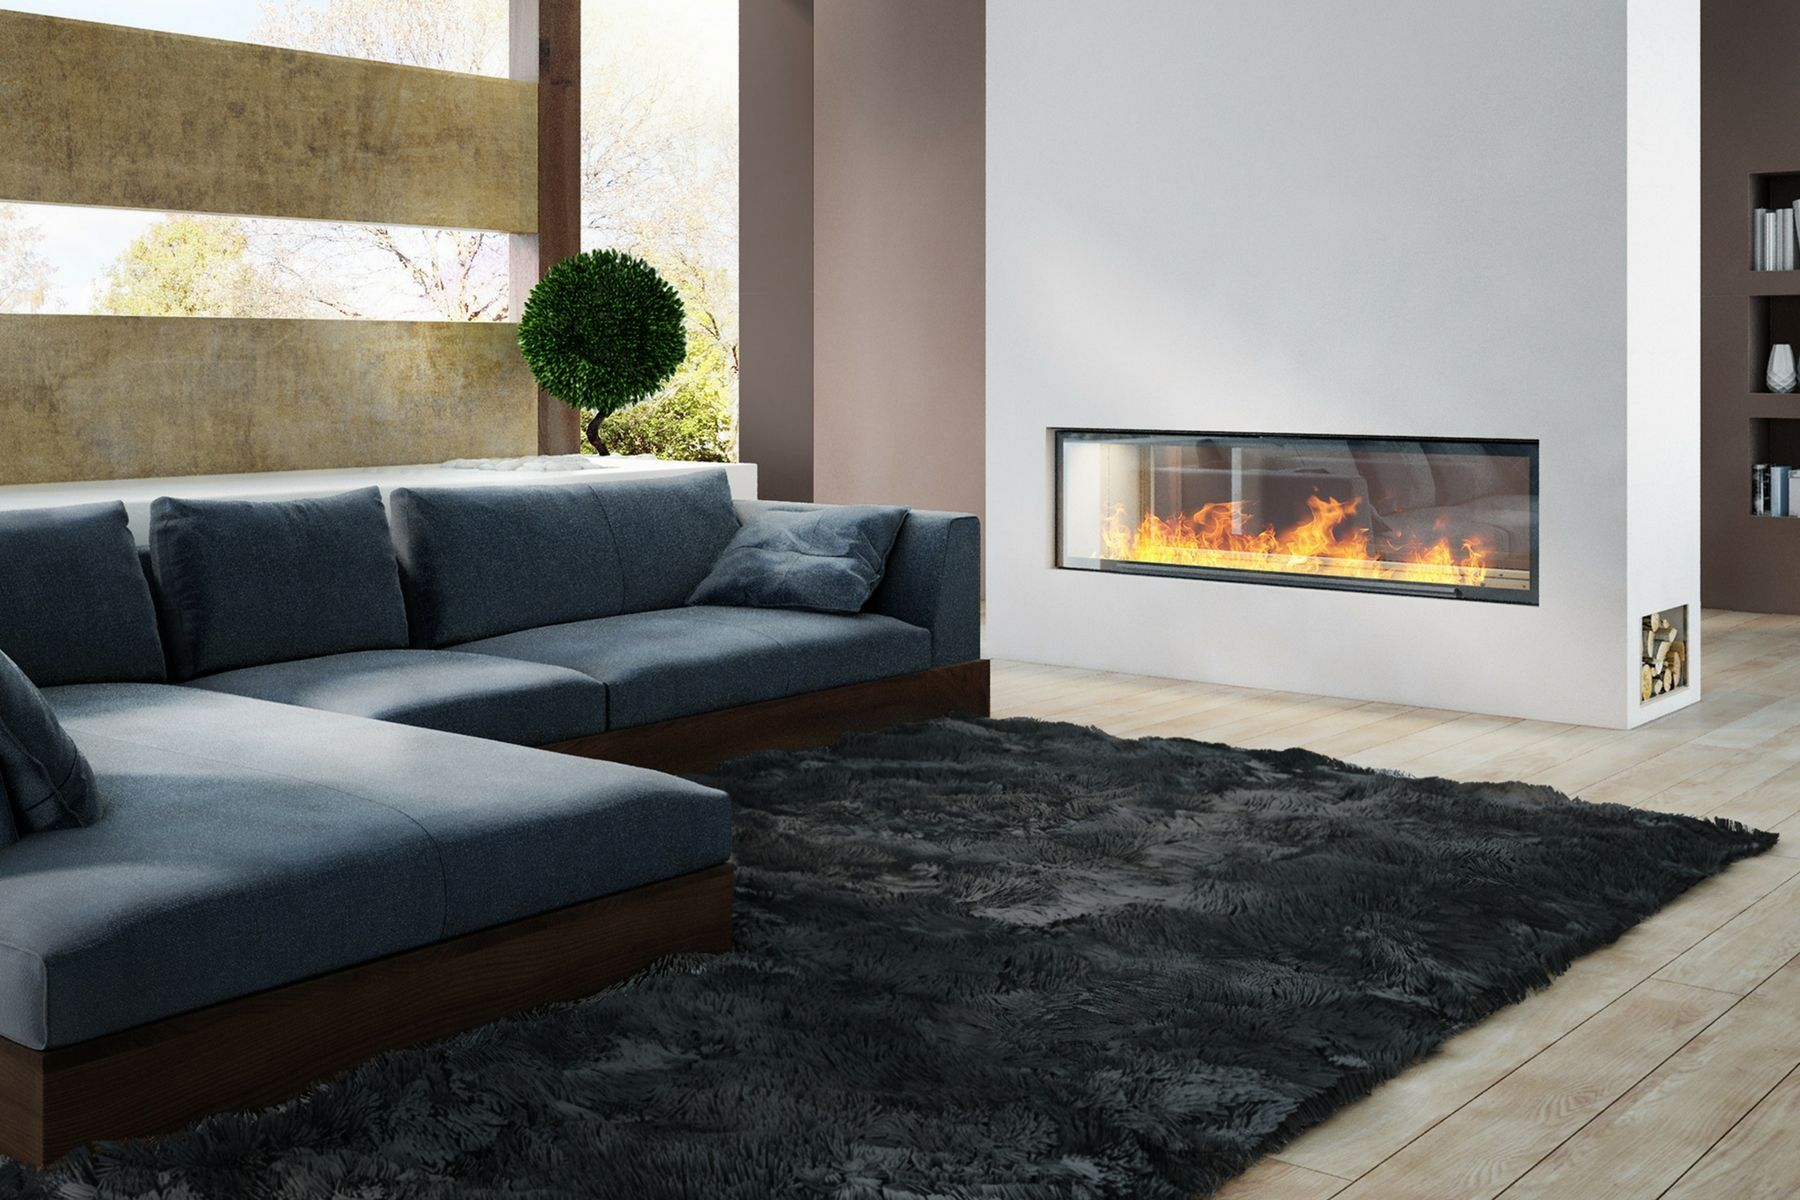 axis h1600xxl double sided wood burning fireplace axis fireplaces